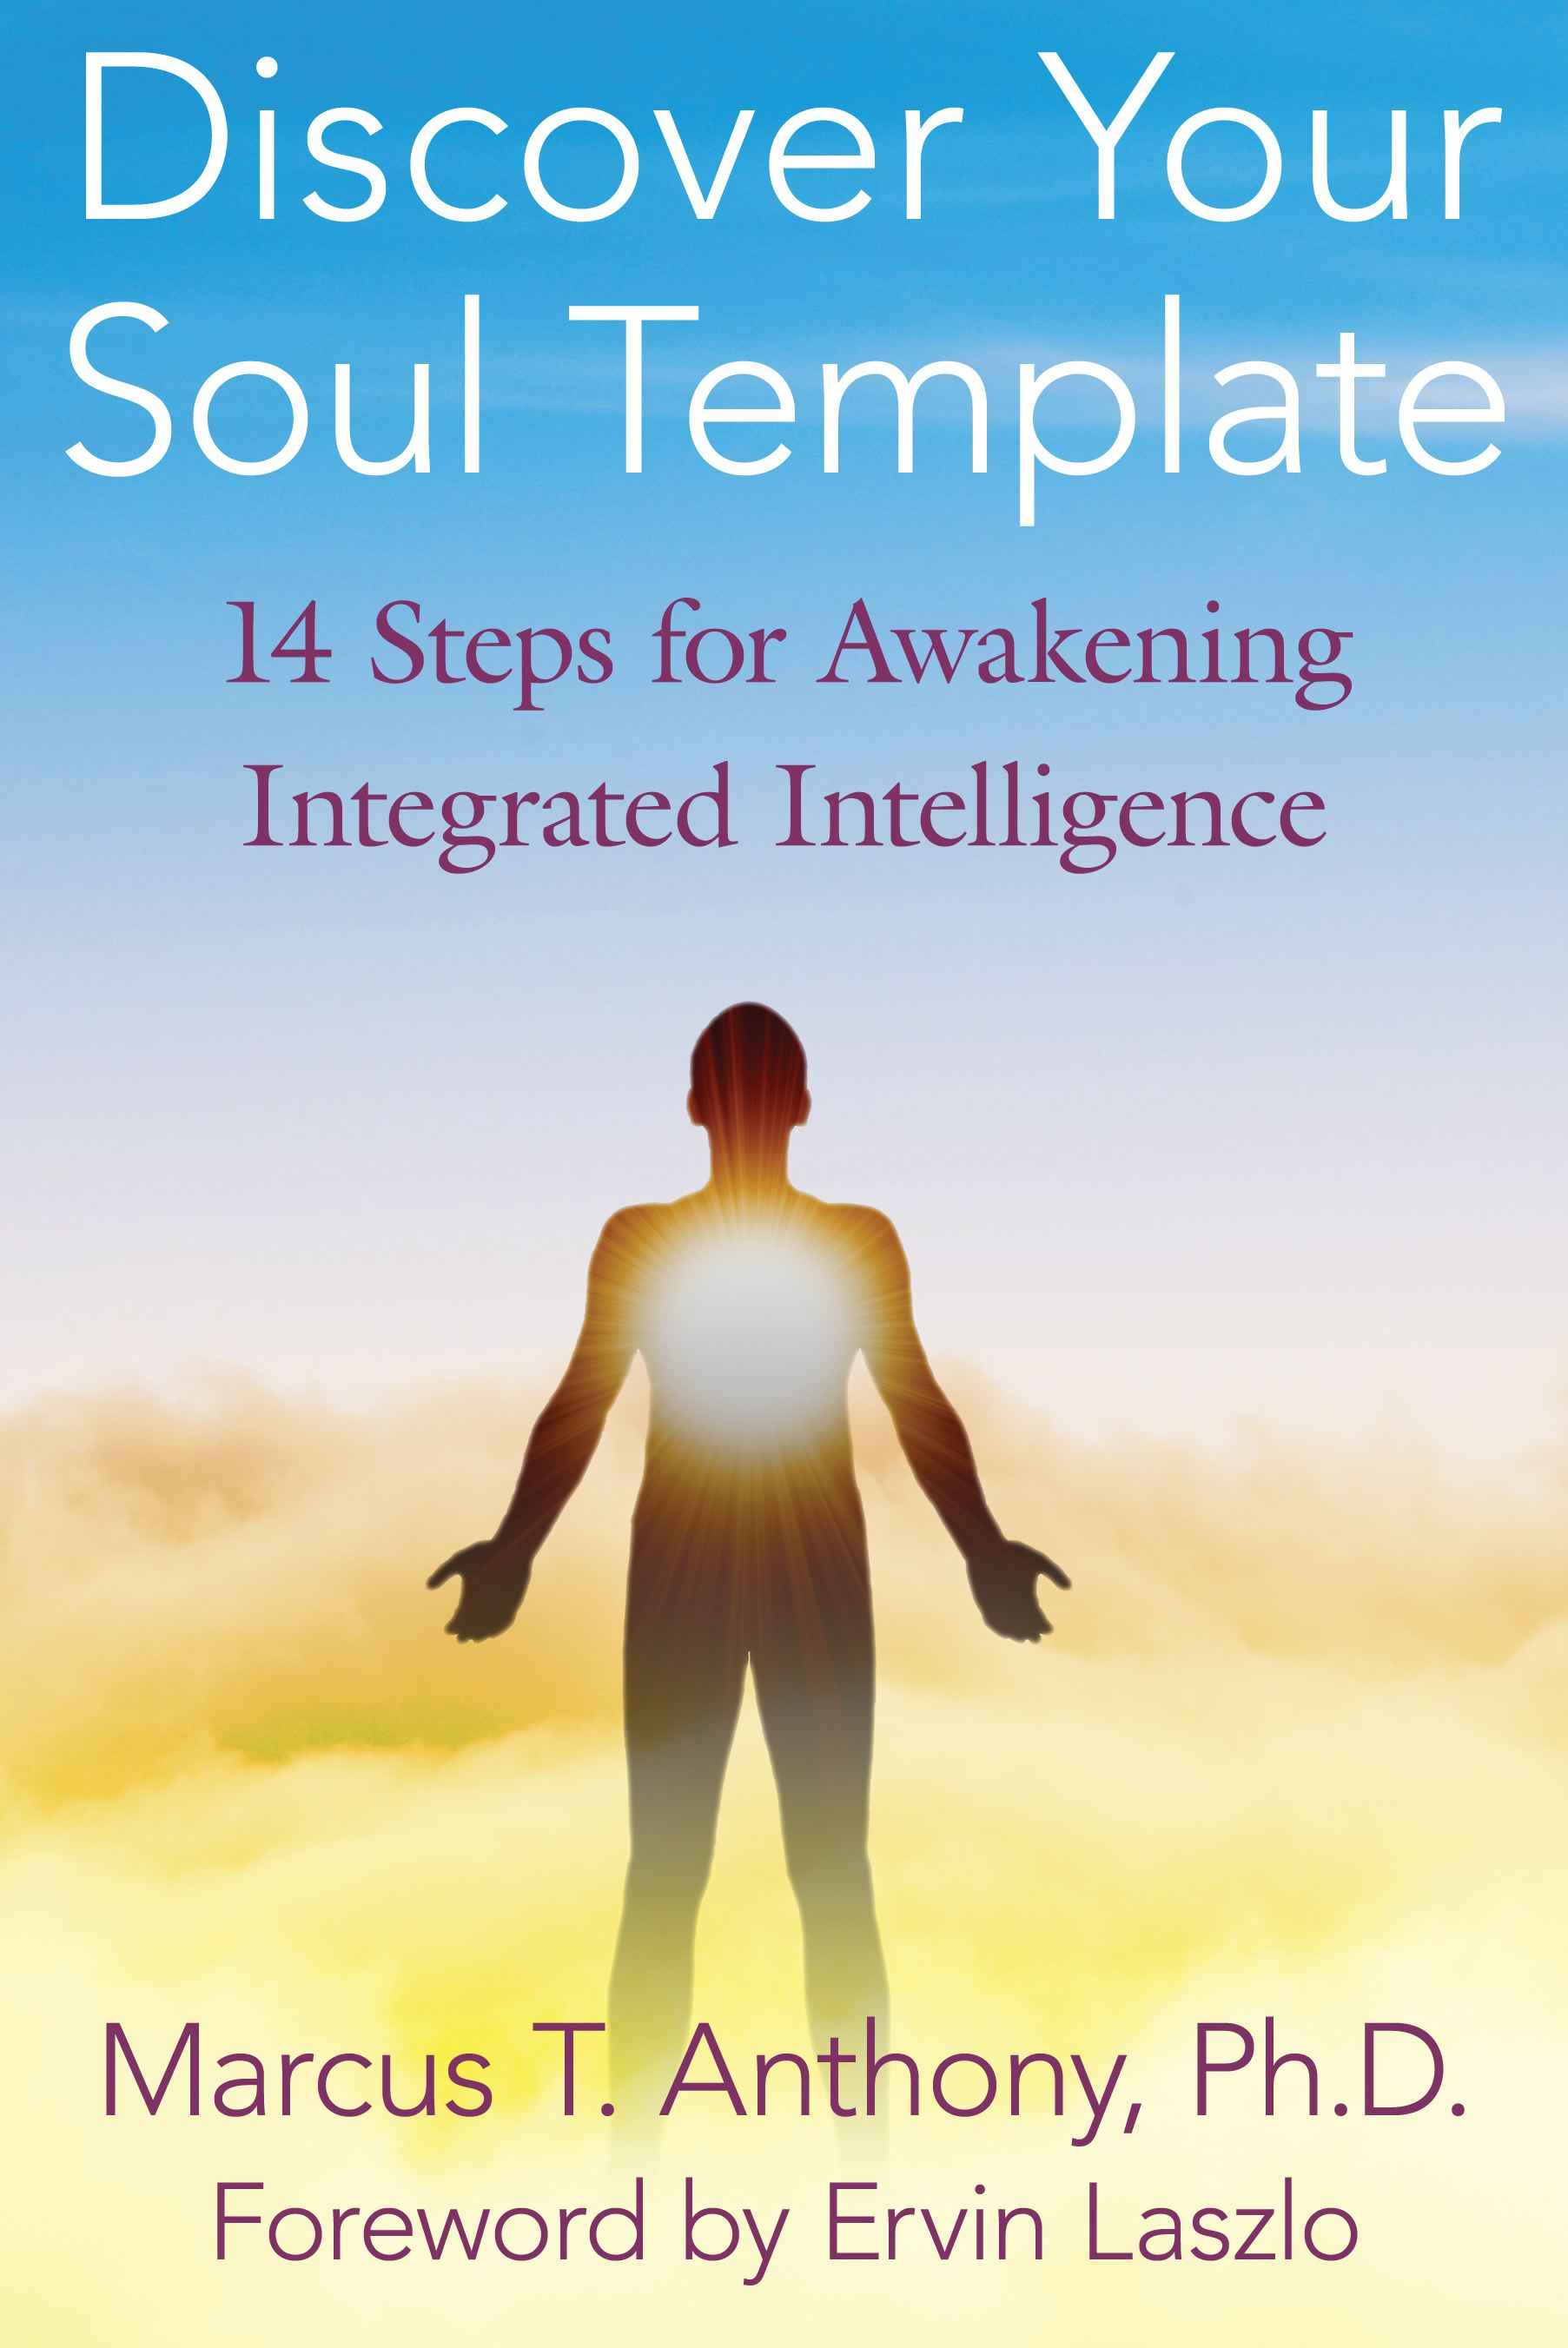 Discover your soul template 9781594774263 hr